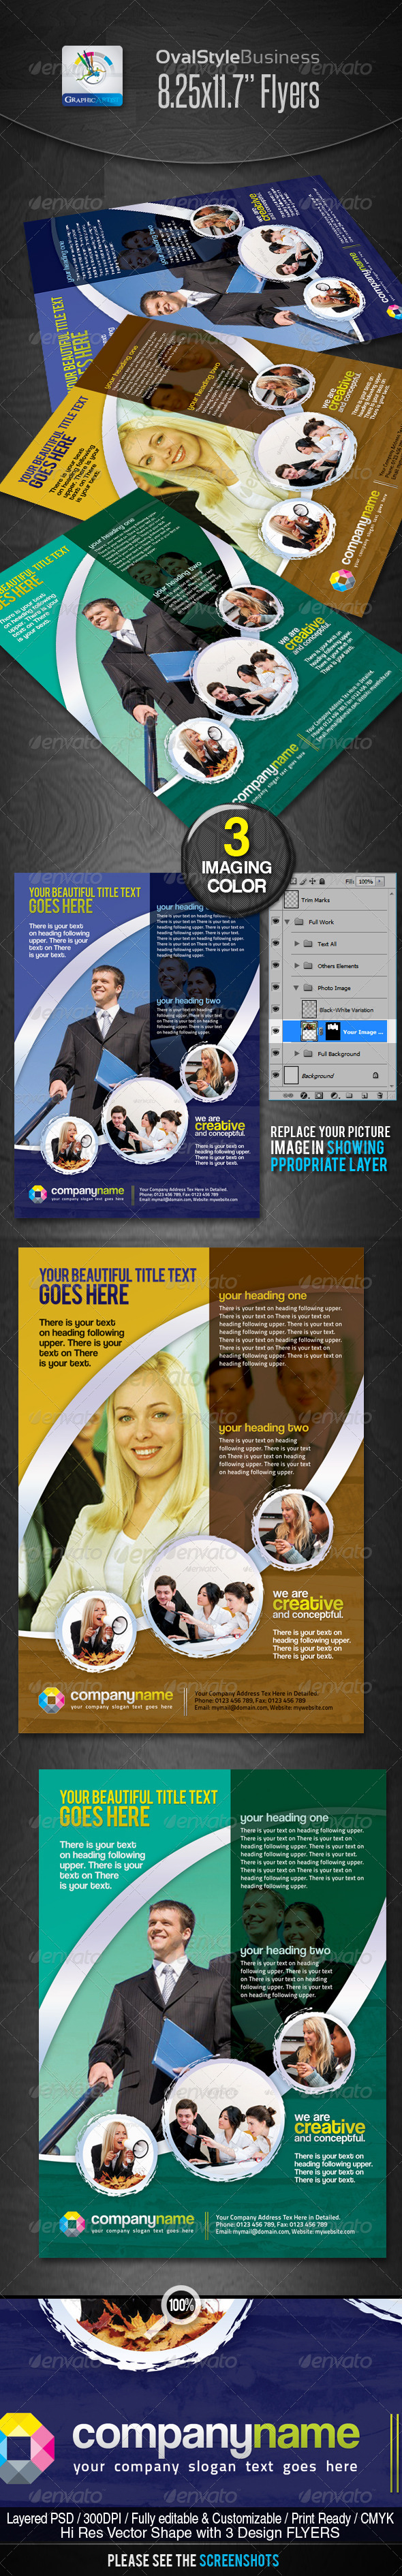 OvalStyle Corporate Business Flyers/Ads - Corporate Flyers